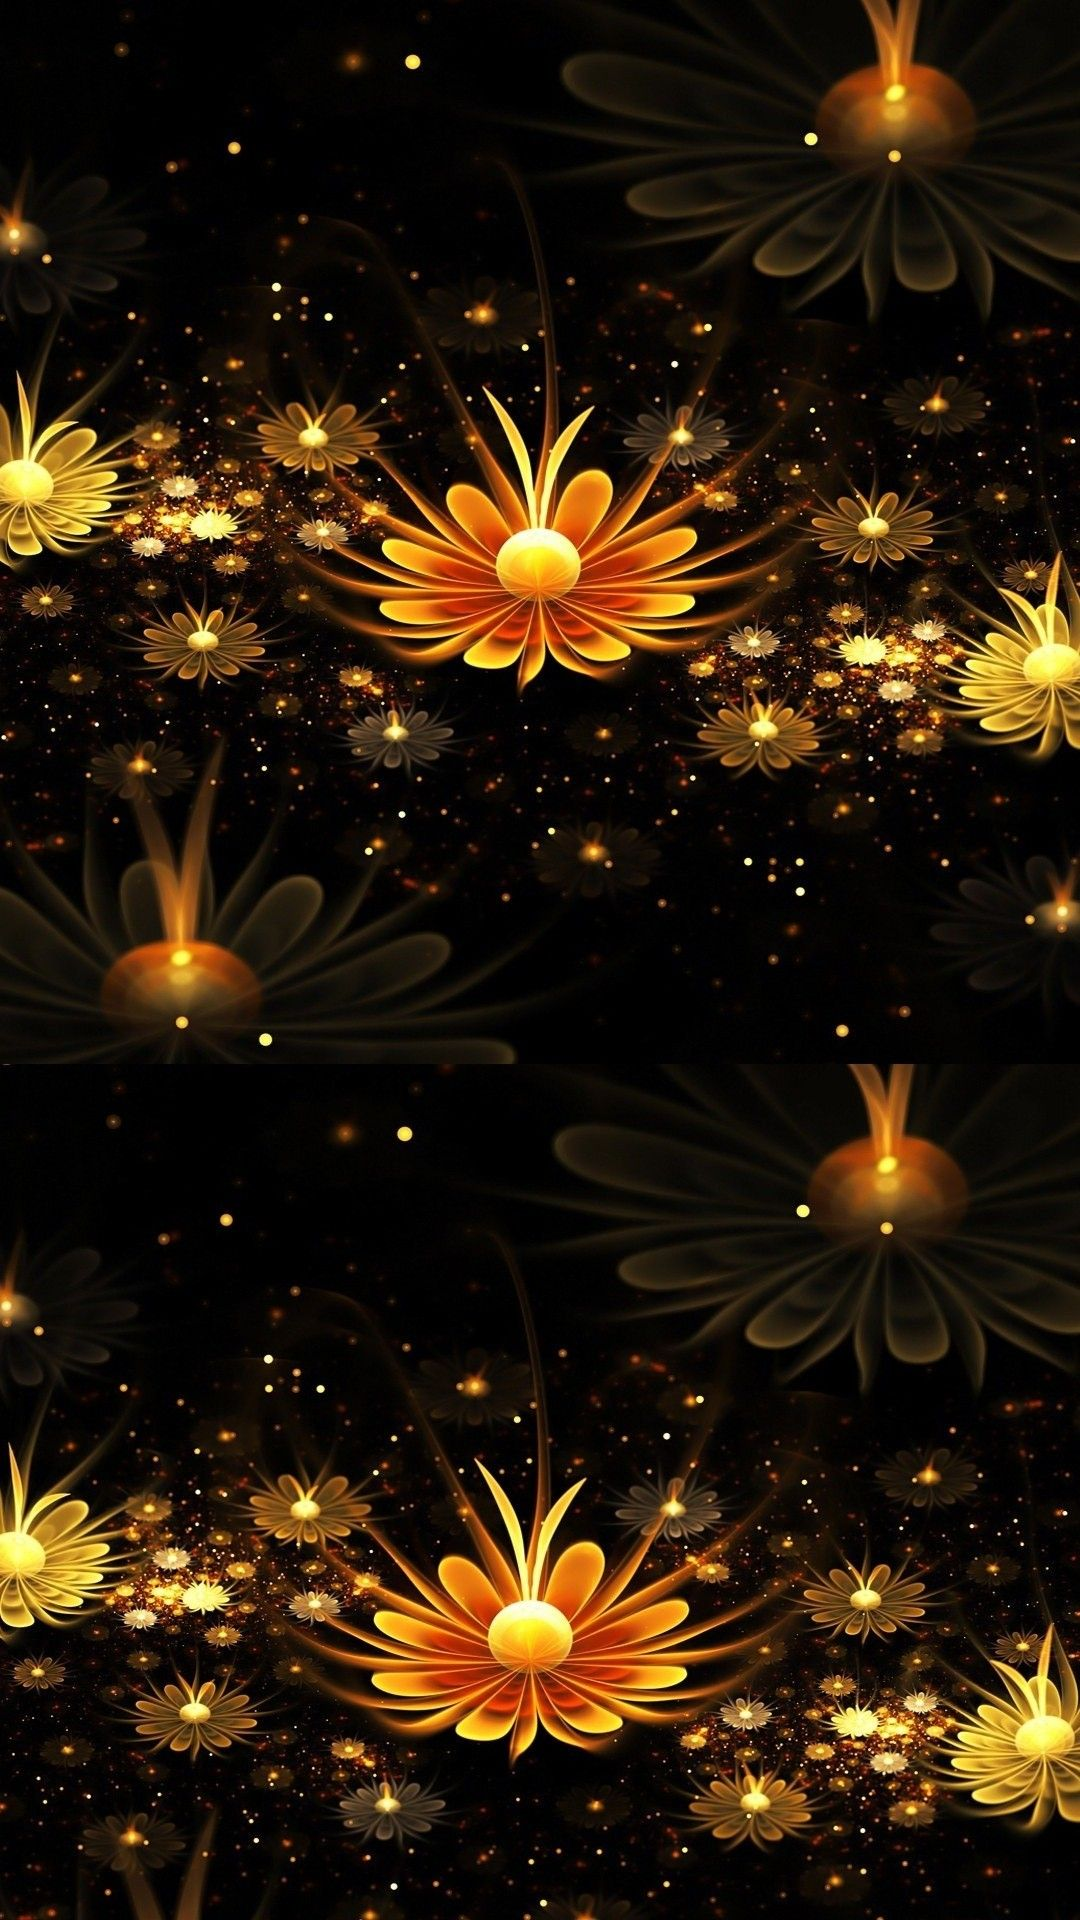 3D Flower Wallpaper For Mobile Android - 2018 Cute Screensavers